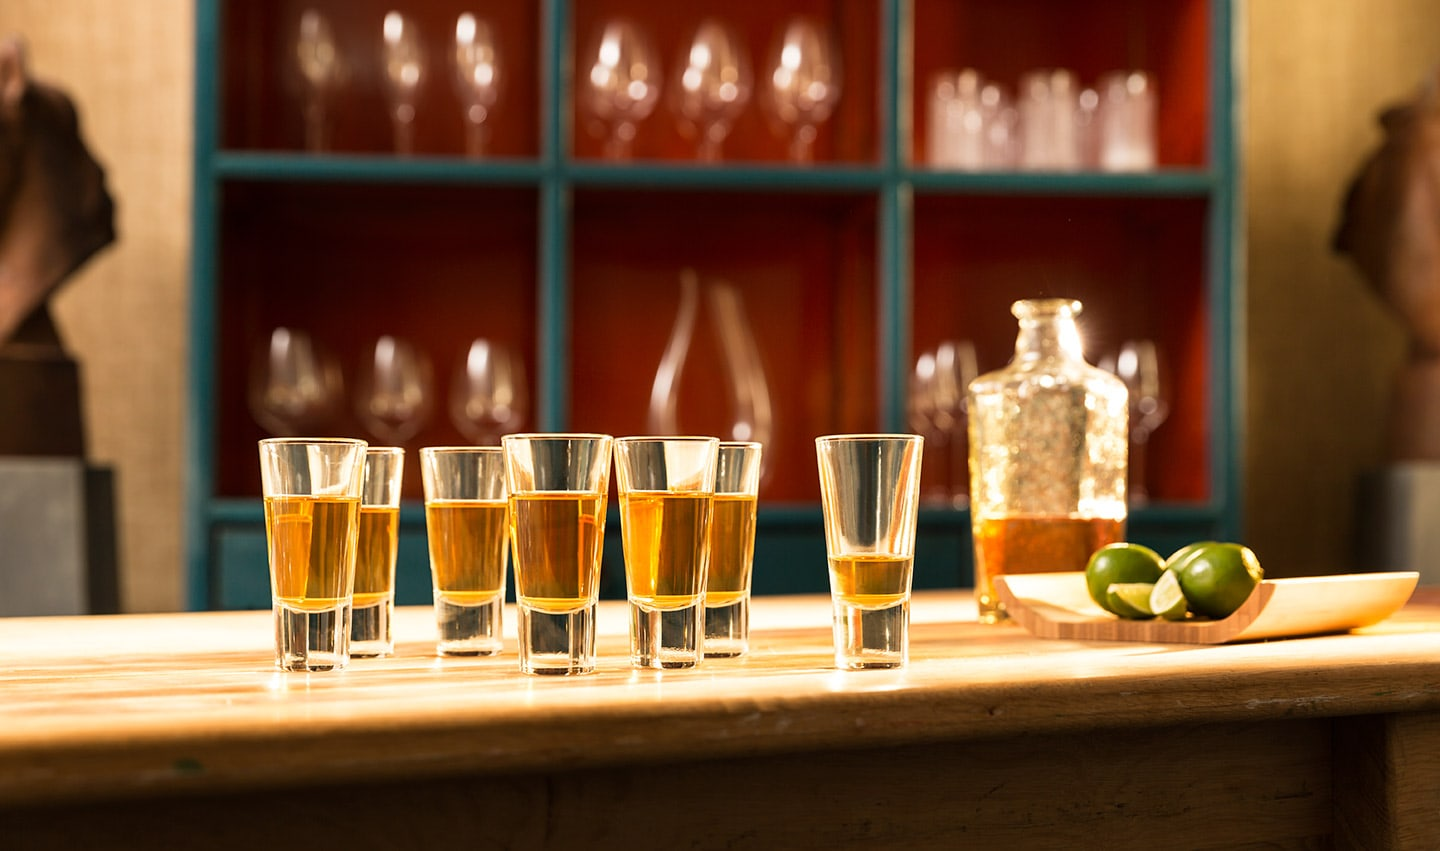 Tequila_shot_glasses_Rod_McLean_g